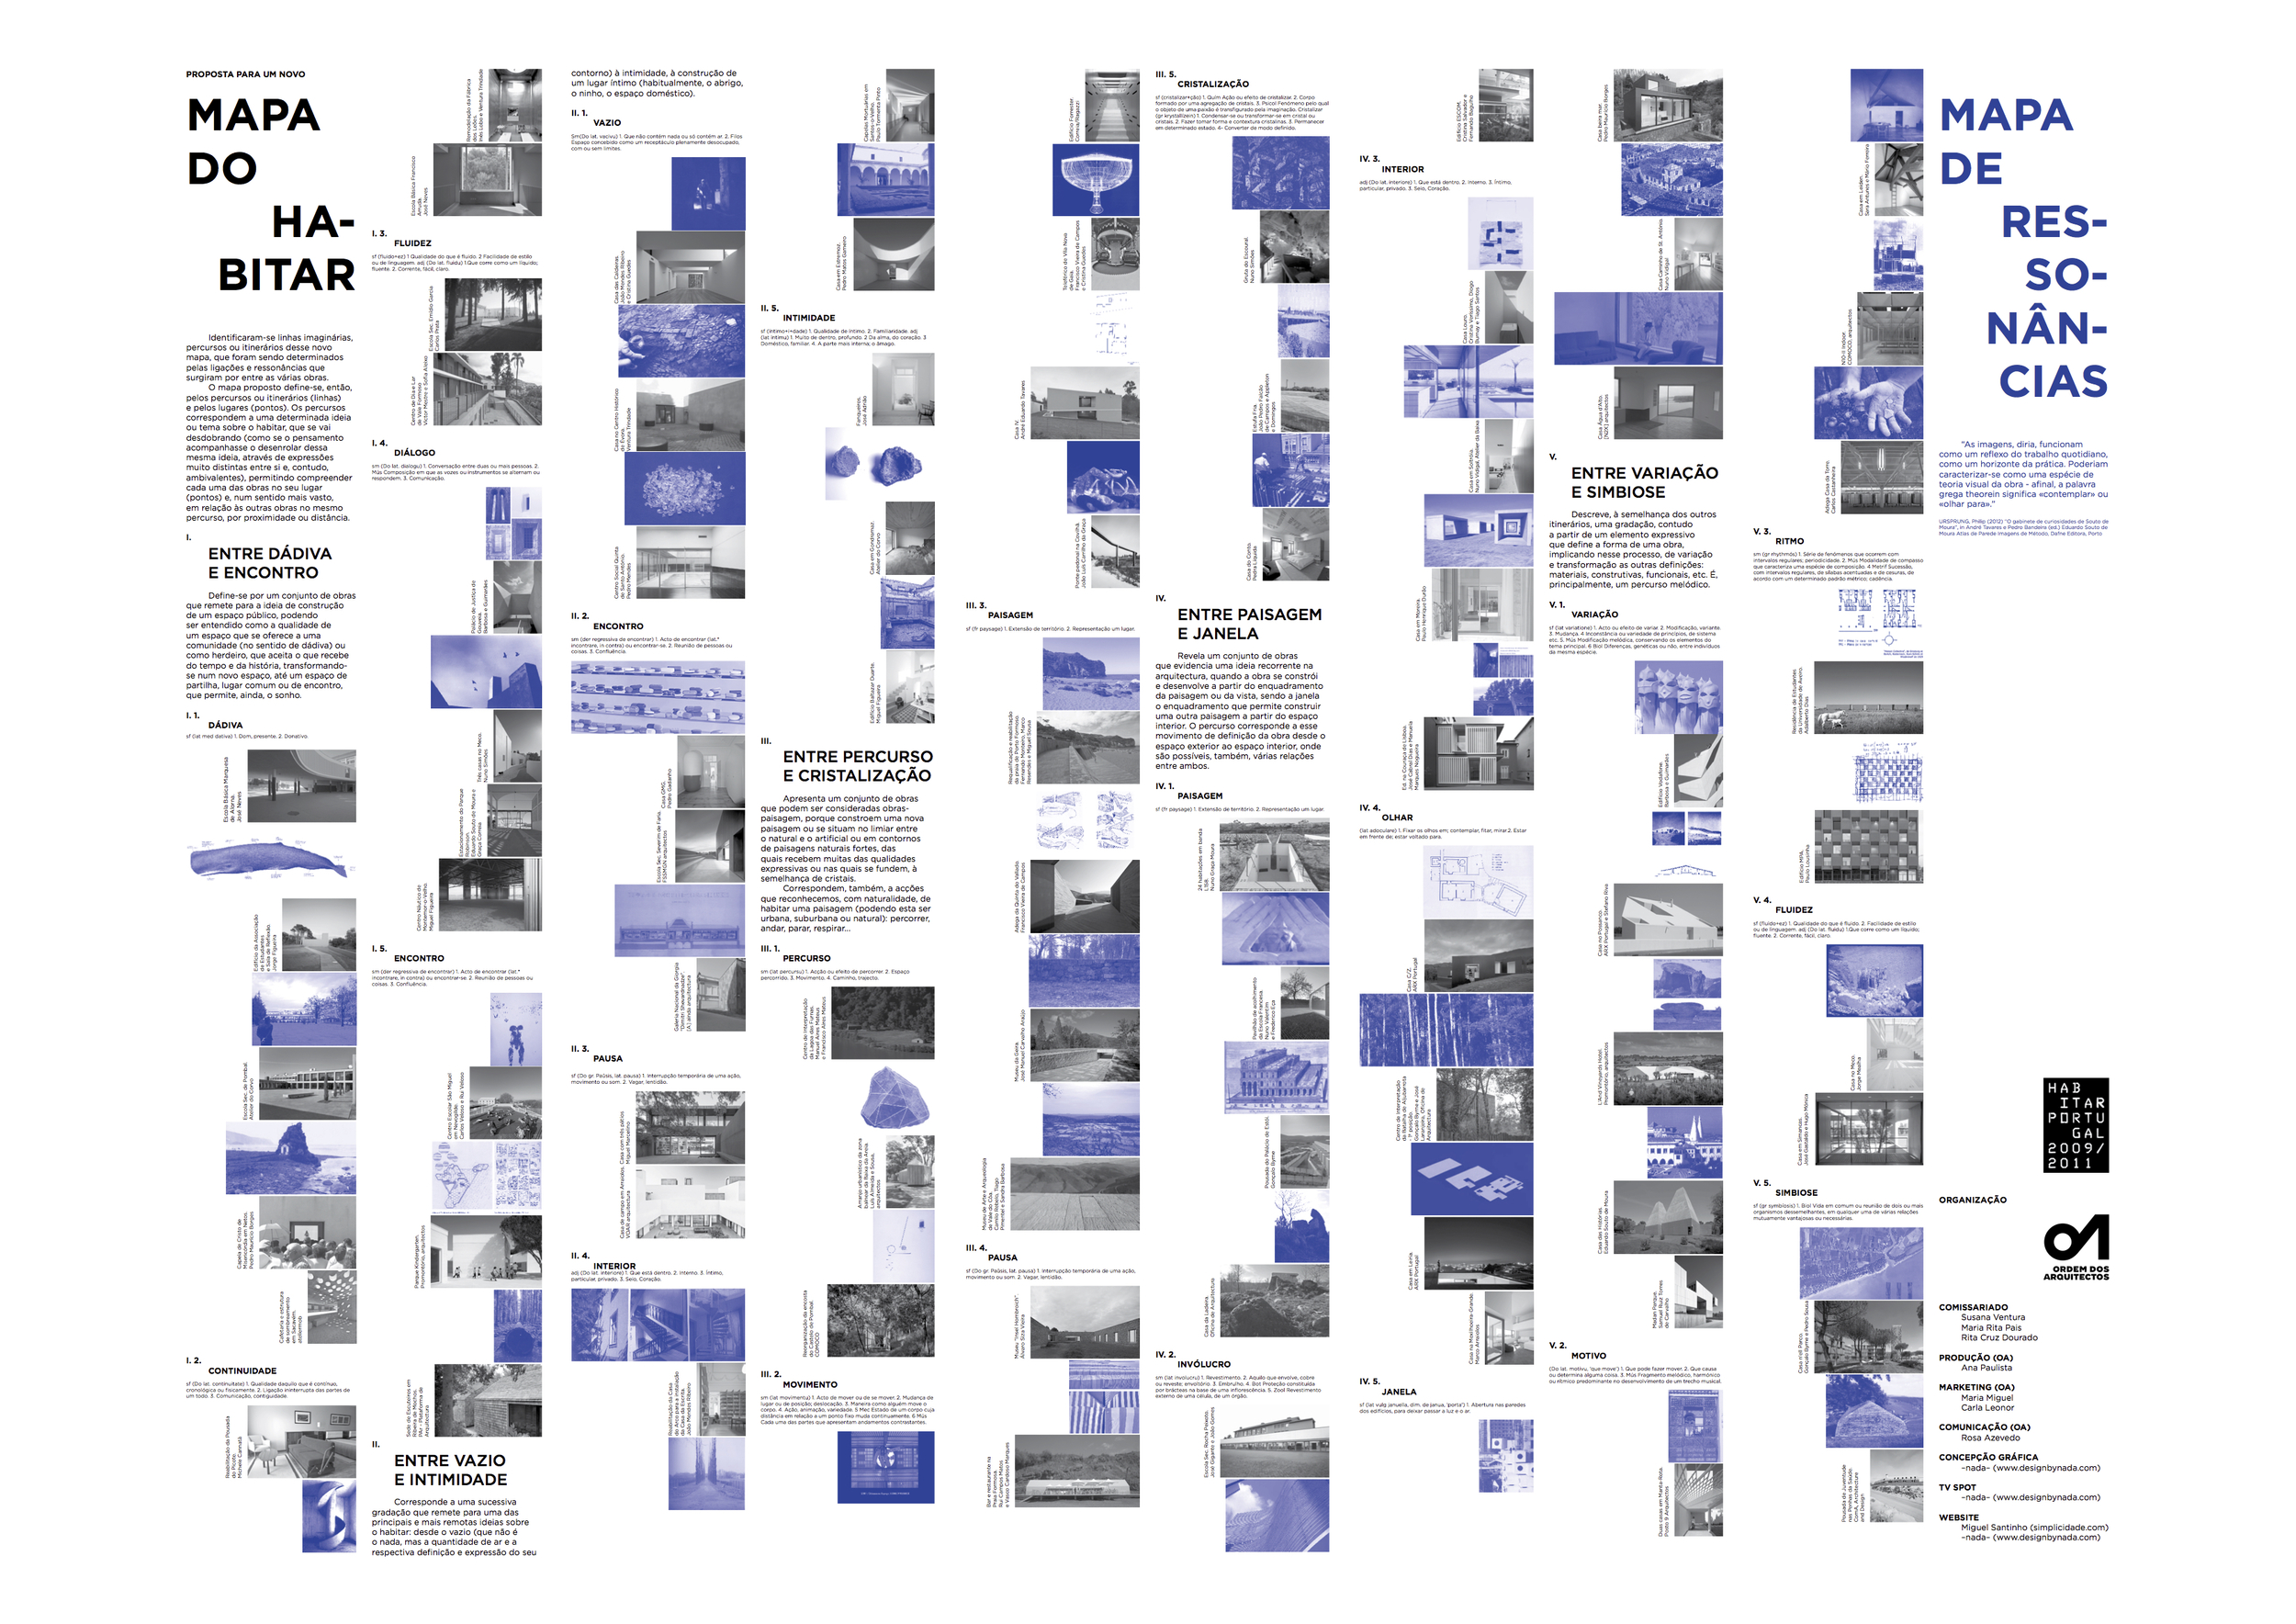 02. Habitar Portugal 09-11: Folding Map - back (featuring the works of architecture, in black and white, organized according to the imagined itineraries and places, and the respective map of resonances in shades of blue). Design by nada.